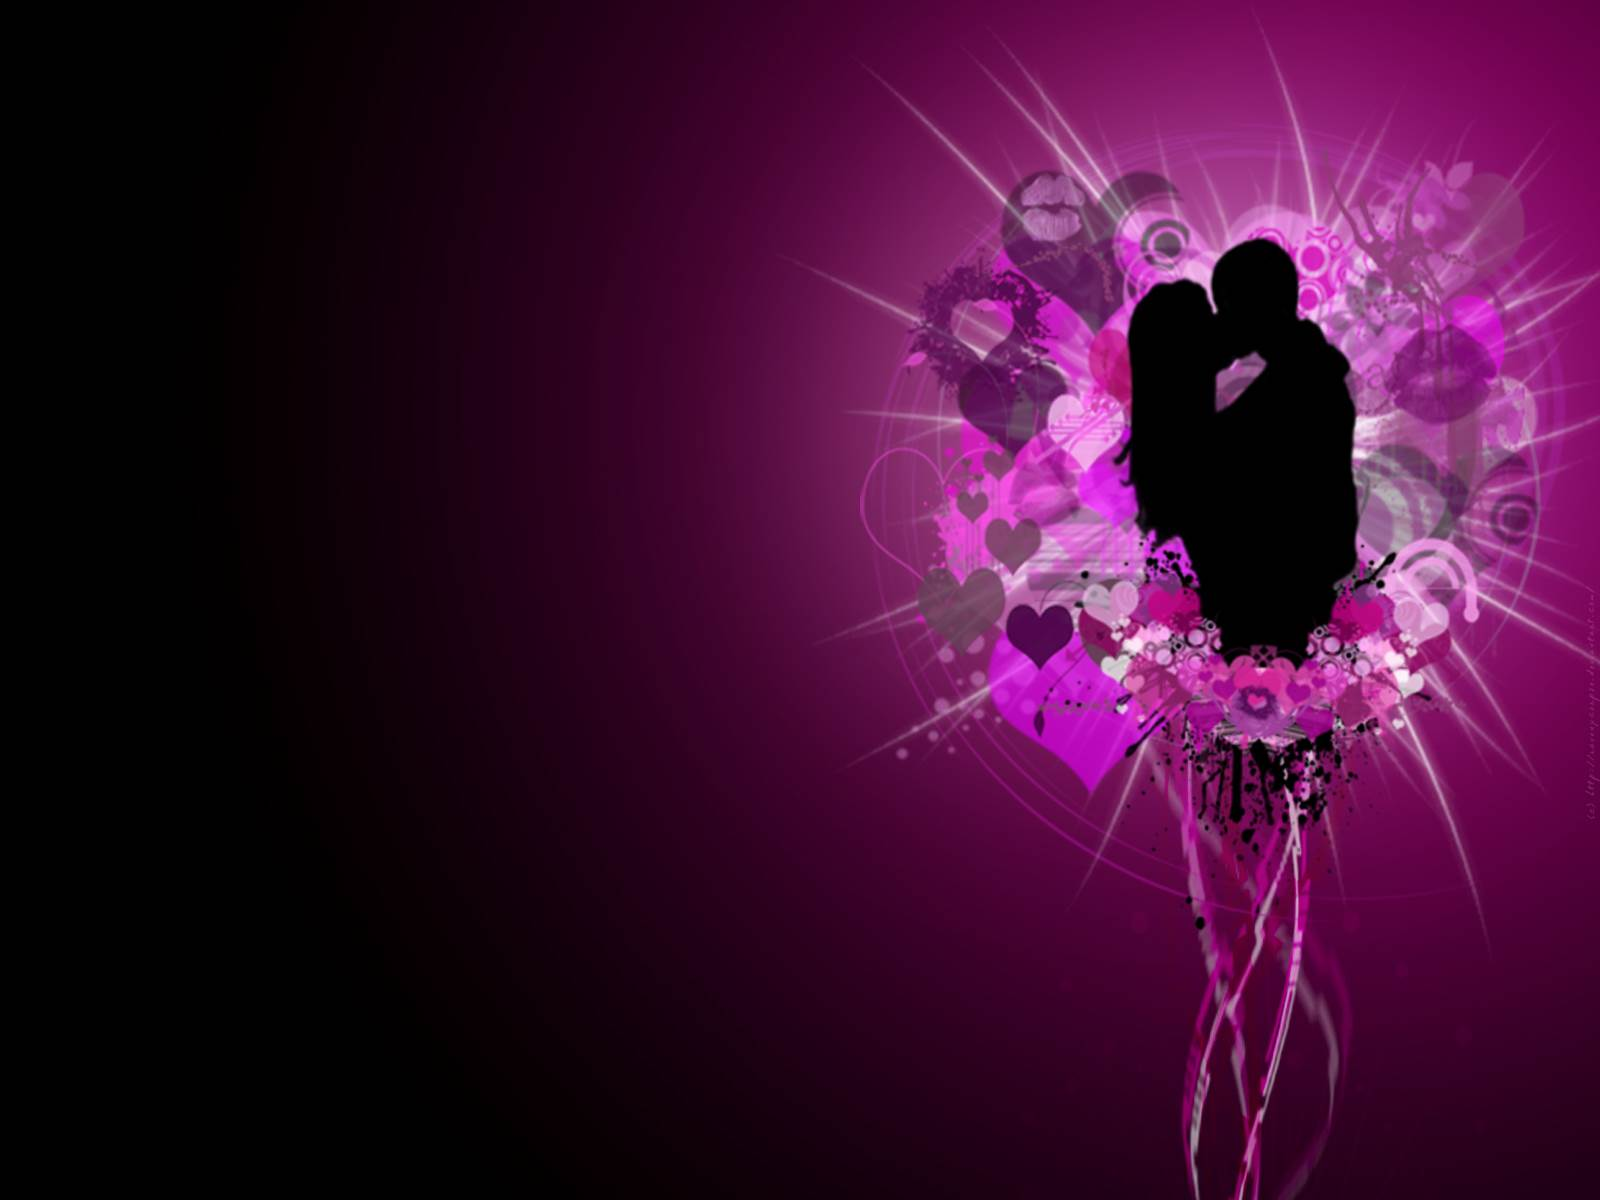 Romantic Love Wallpapers Hd  1600x1200